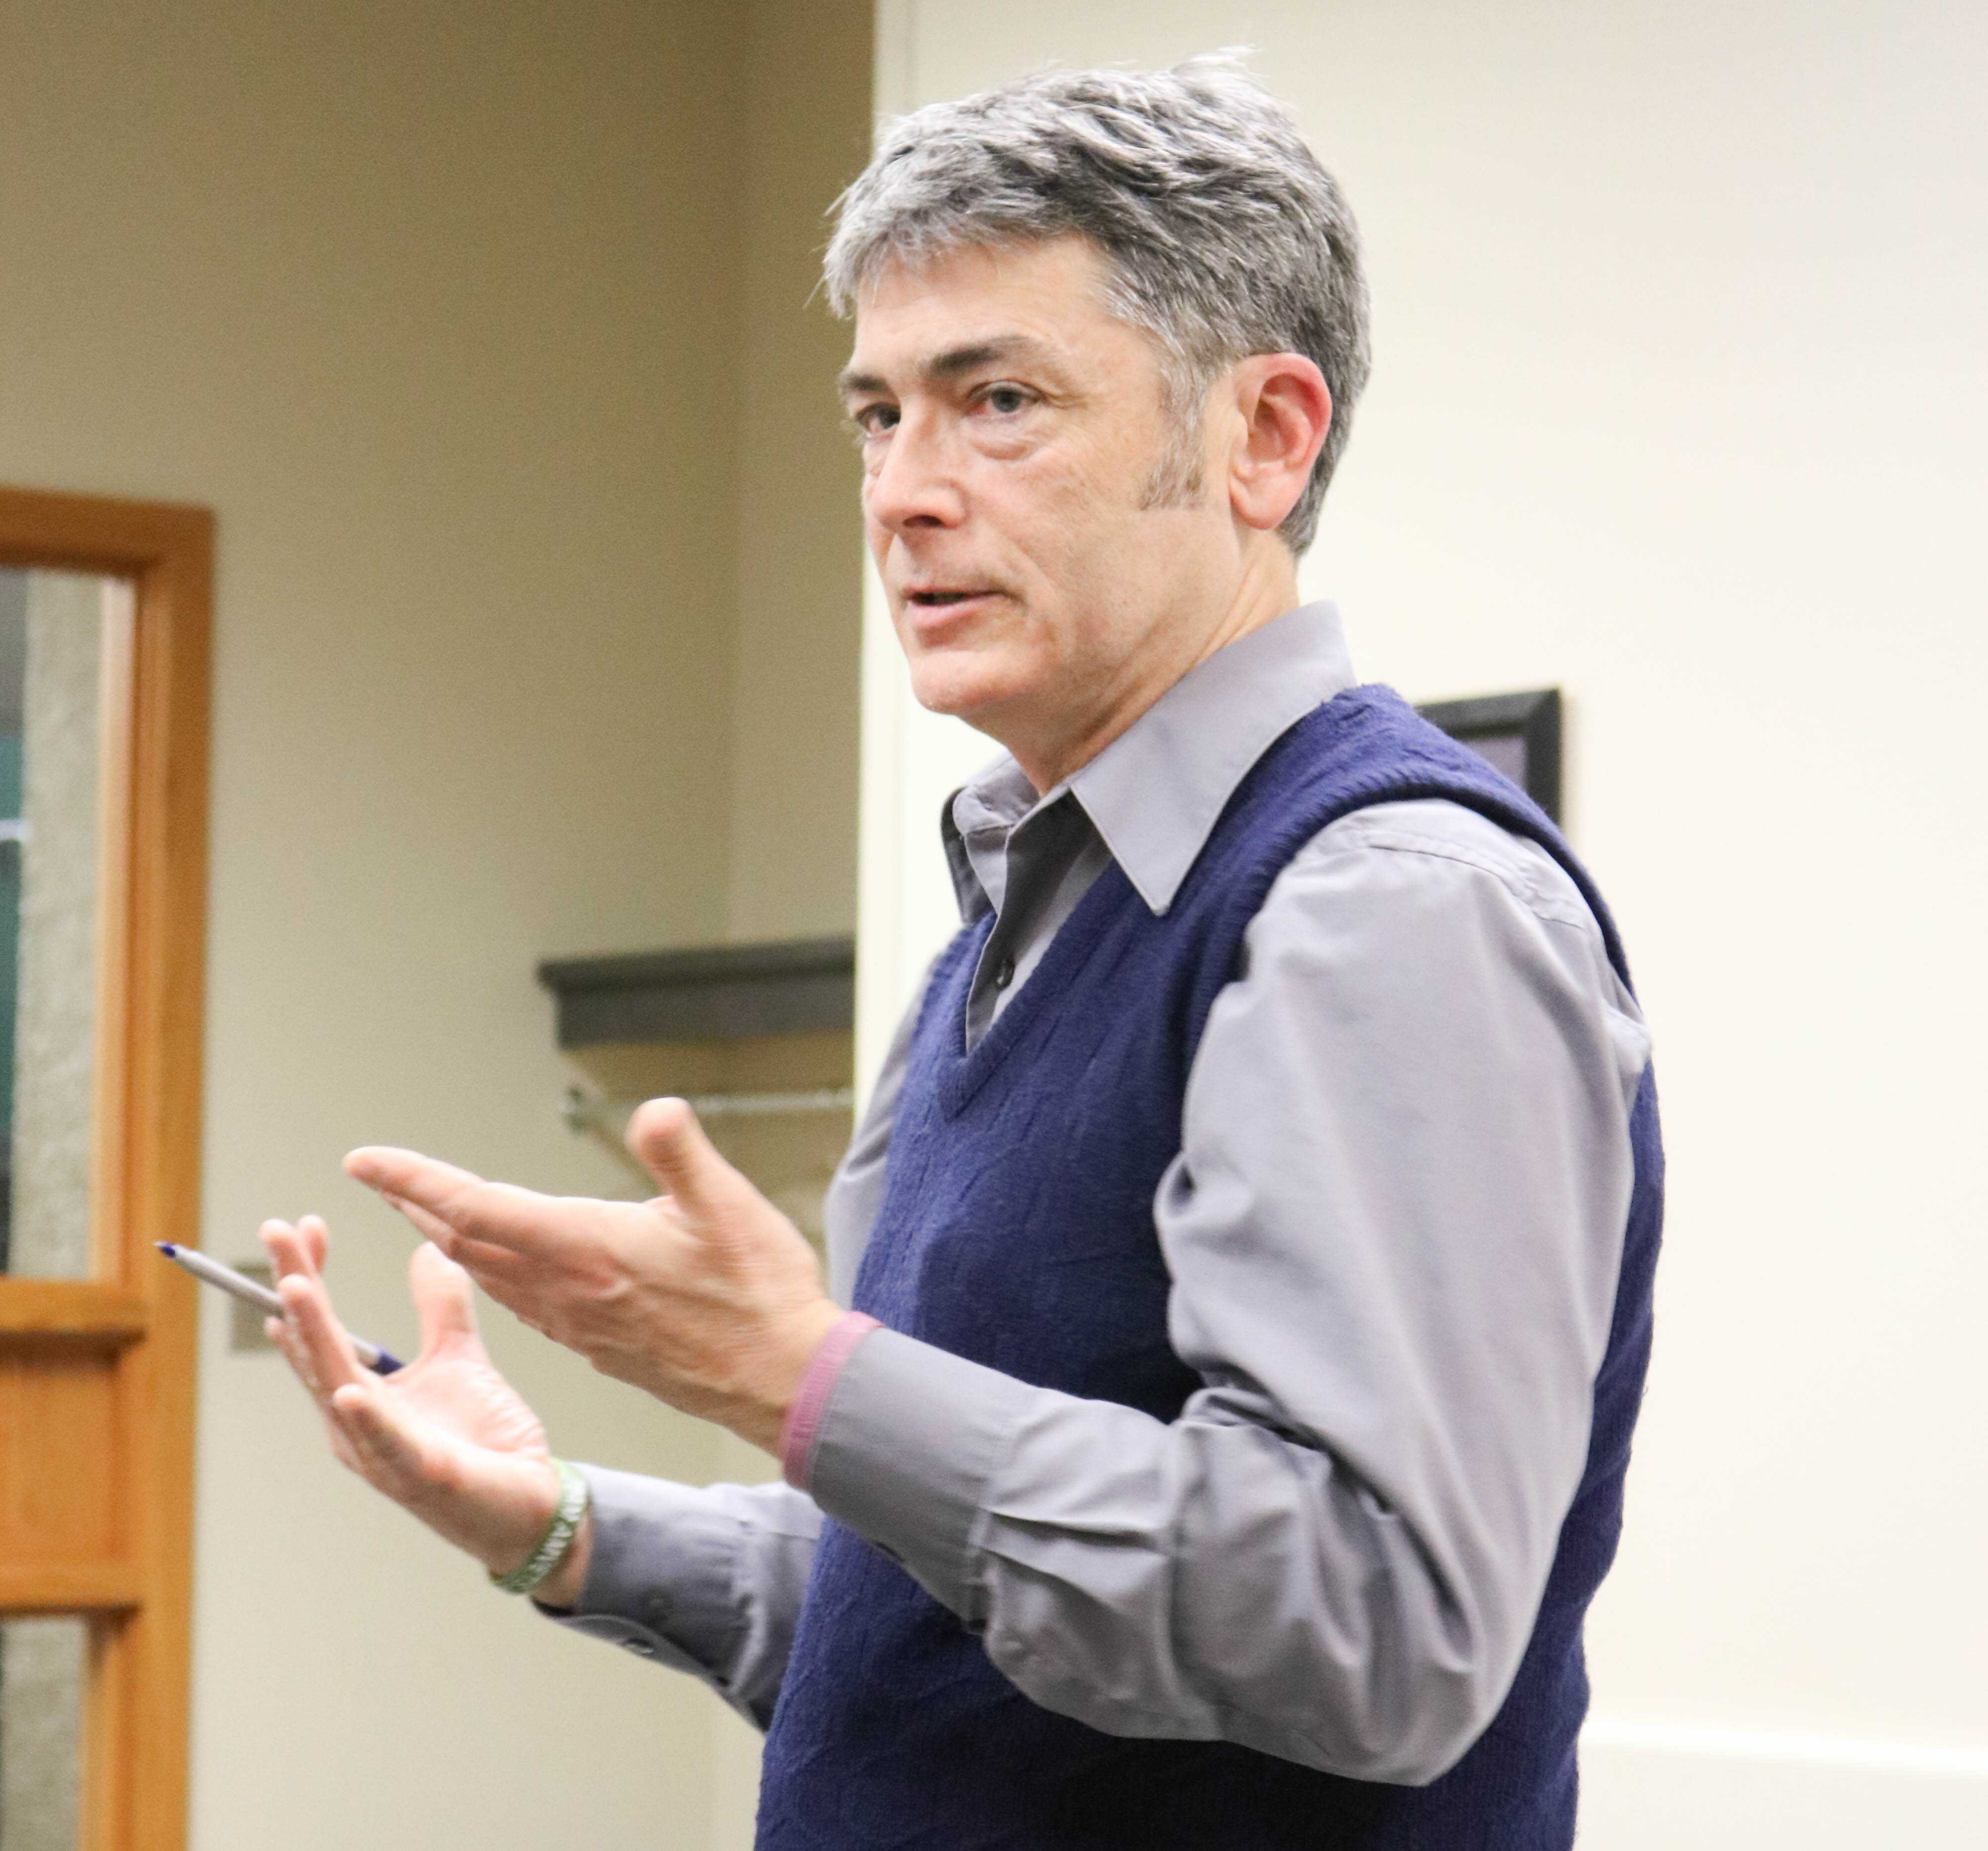 Pat Kinney, the news editor of the Waterloo-Cedar Falls Courier, came to the Maucker Union to discuss how local news is evolving in Iowa and the United States.